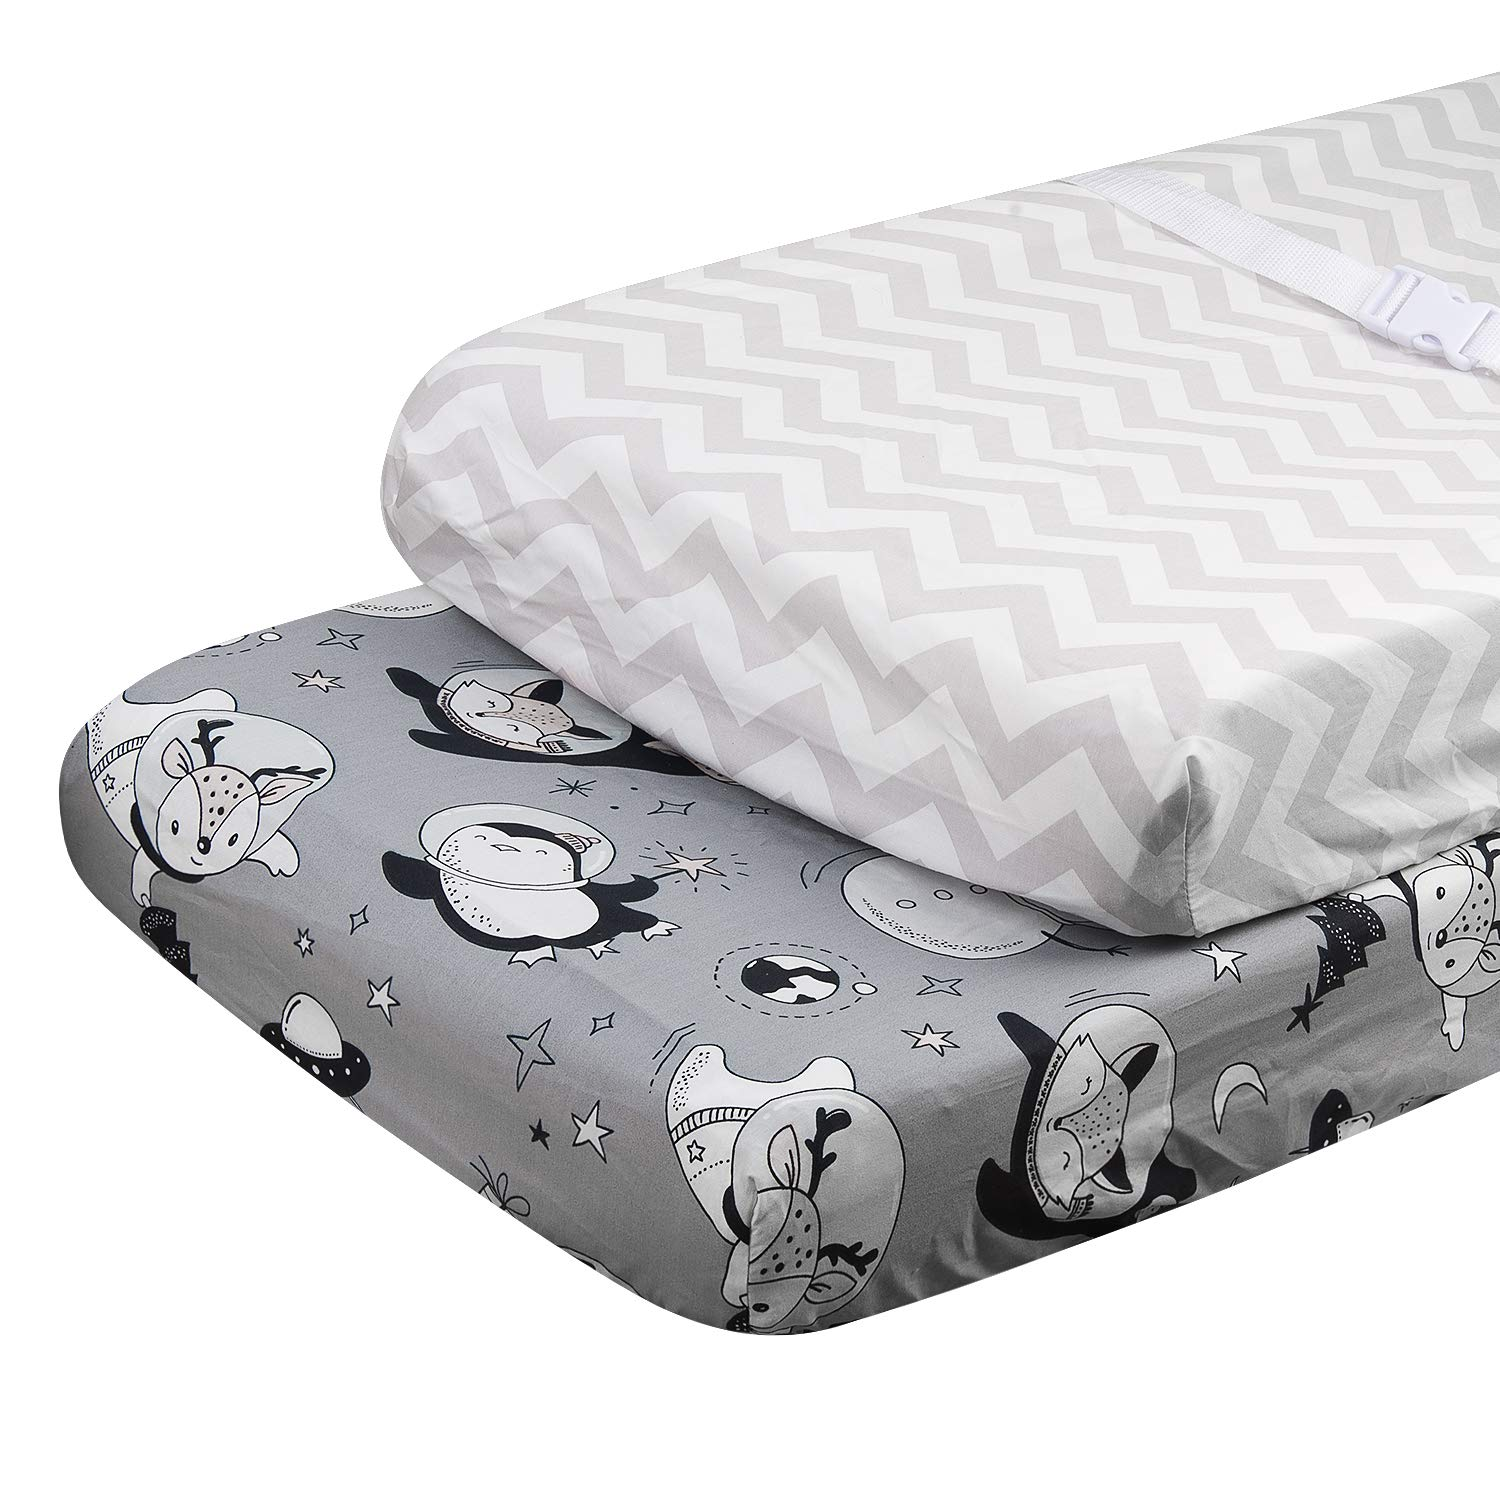 ALVABABY Cradle Mattress,100/% Organic Cotton,Soft and Light,Baby Changing Pad Cover for Boys and Girls